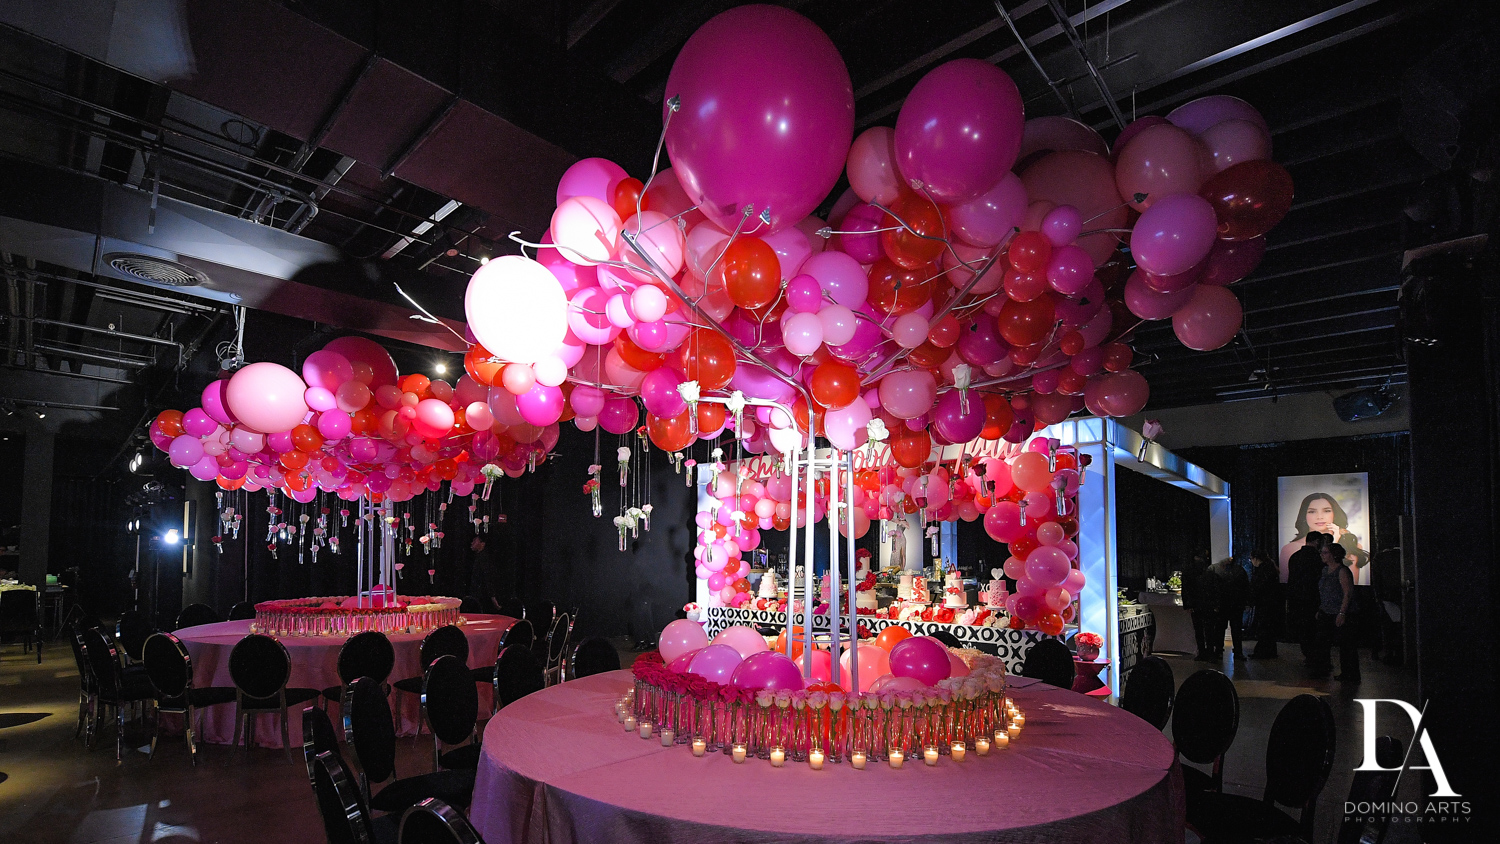 christina manso decor at Fashion Theme Bat Mitzvah at Gallery of Amazing Things by Domino Arts Photography